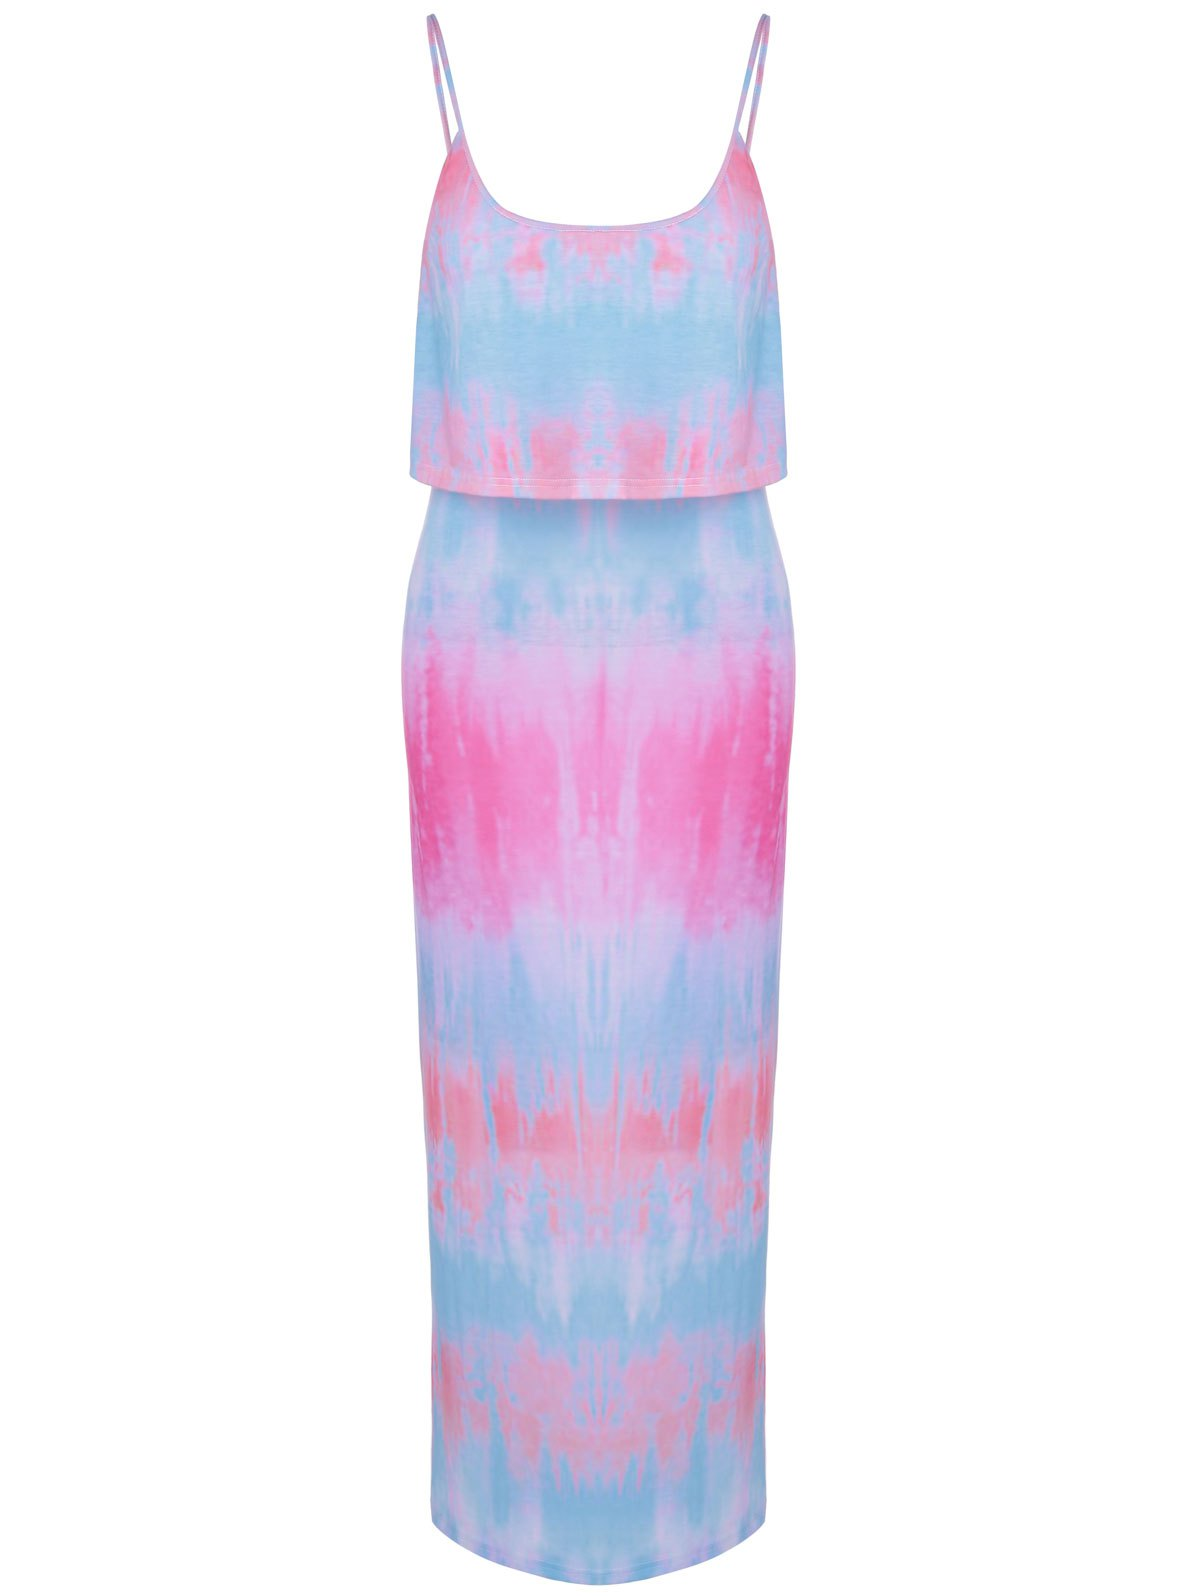 Fashionable Tie-Dyed Flounce Spaghetti Strap Faux Twinset Design Dress For Women fashionable bare midriff design sleeveless faux twinset dress for women